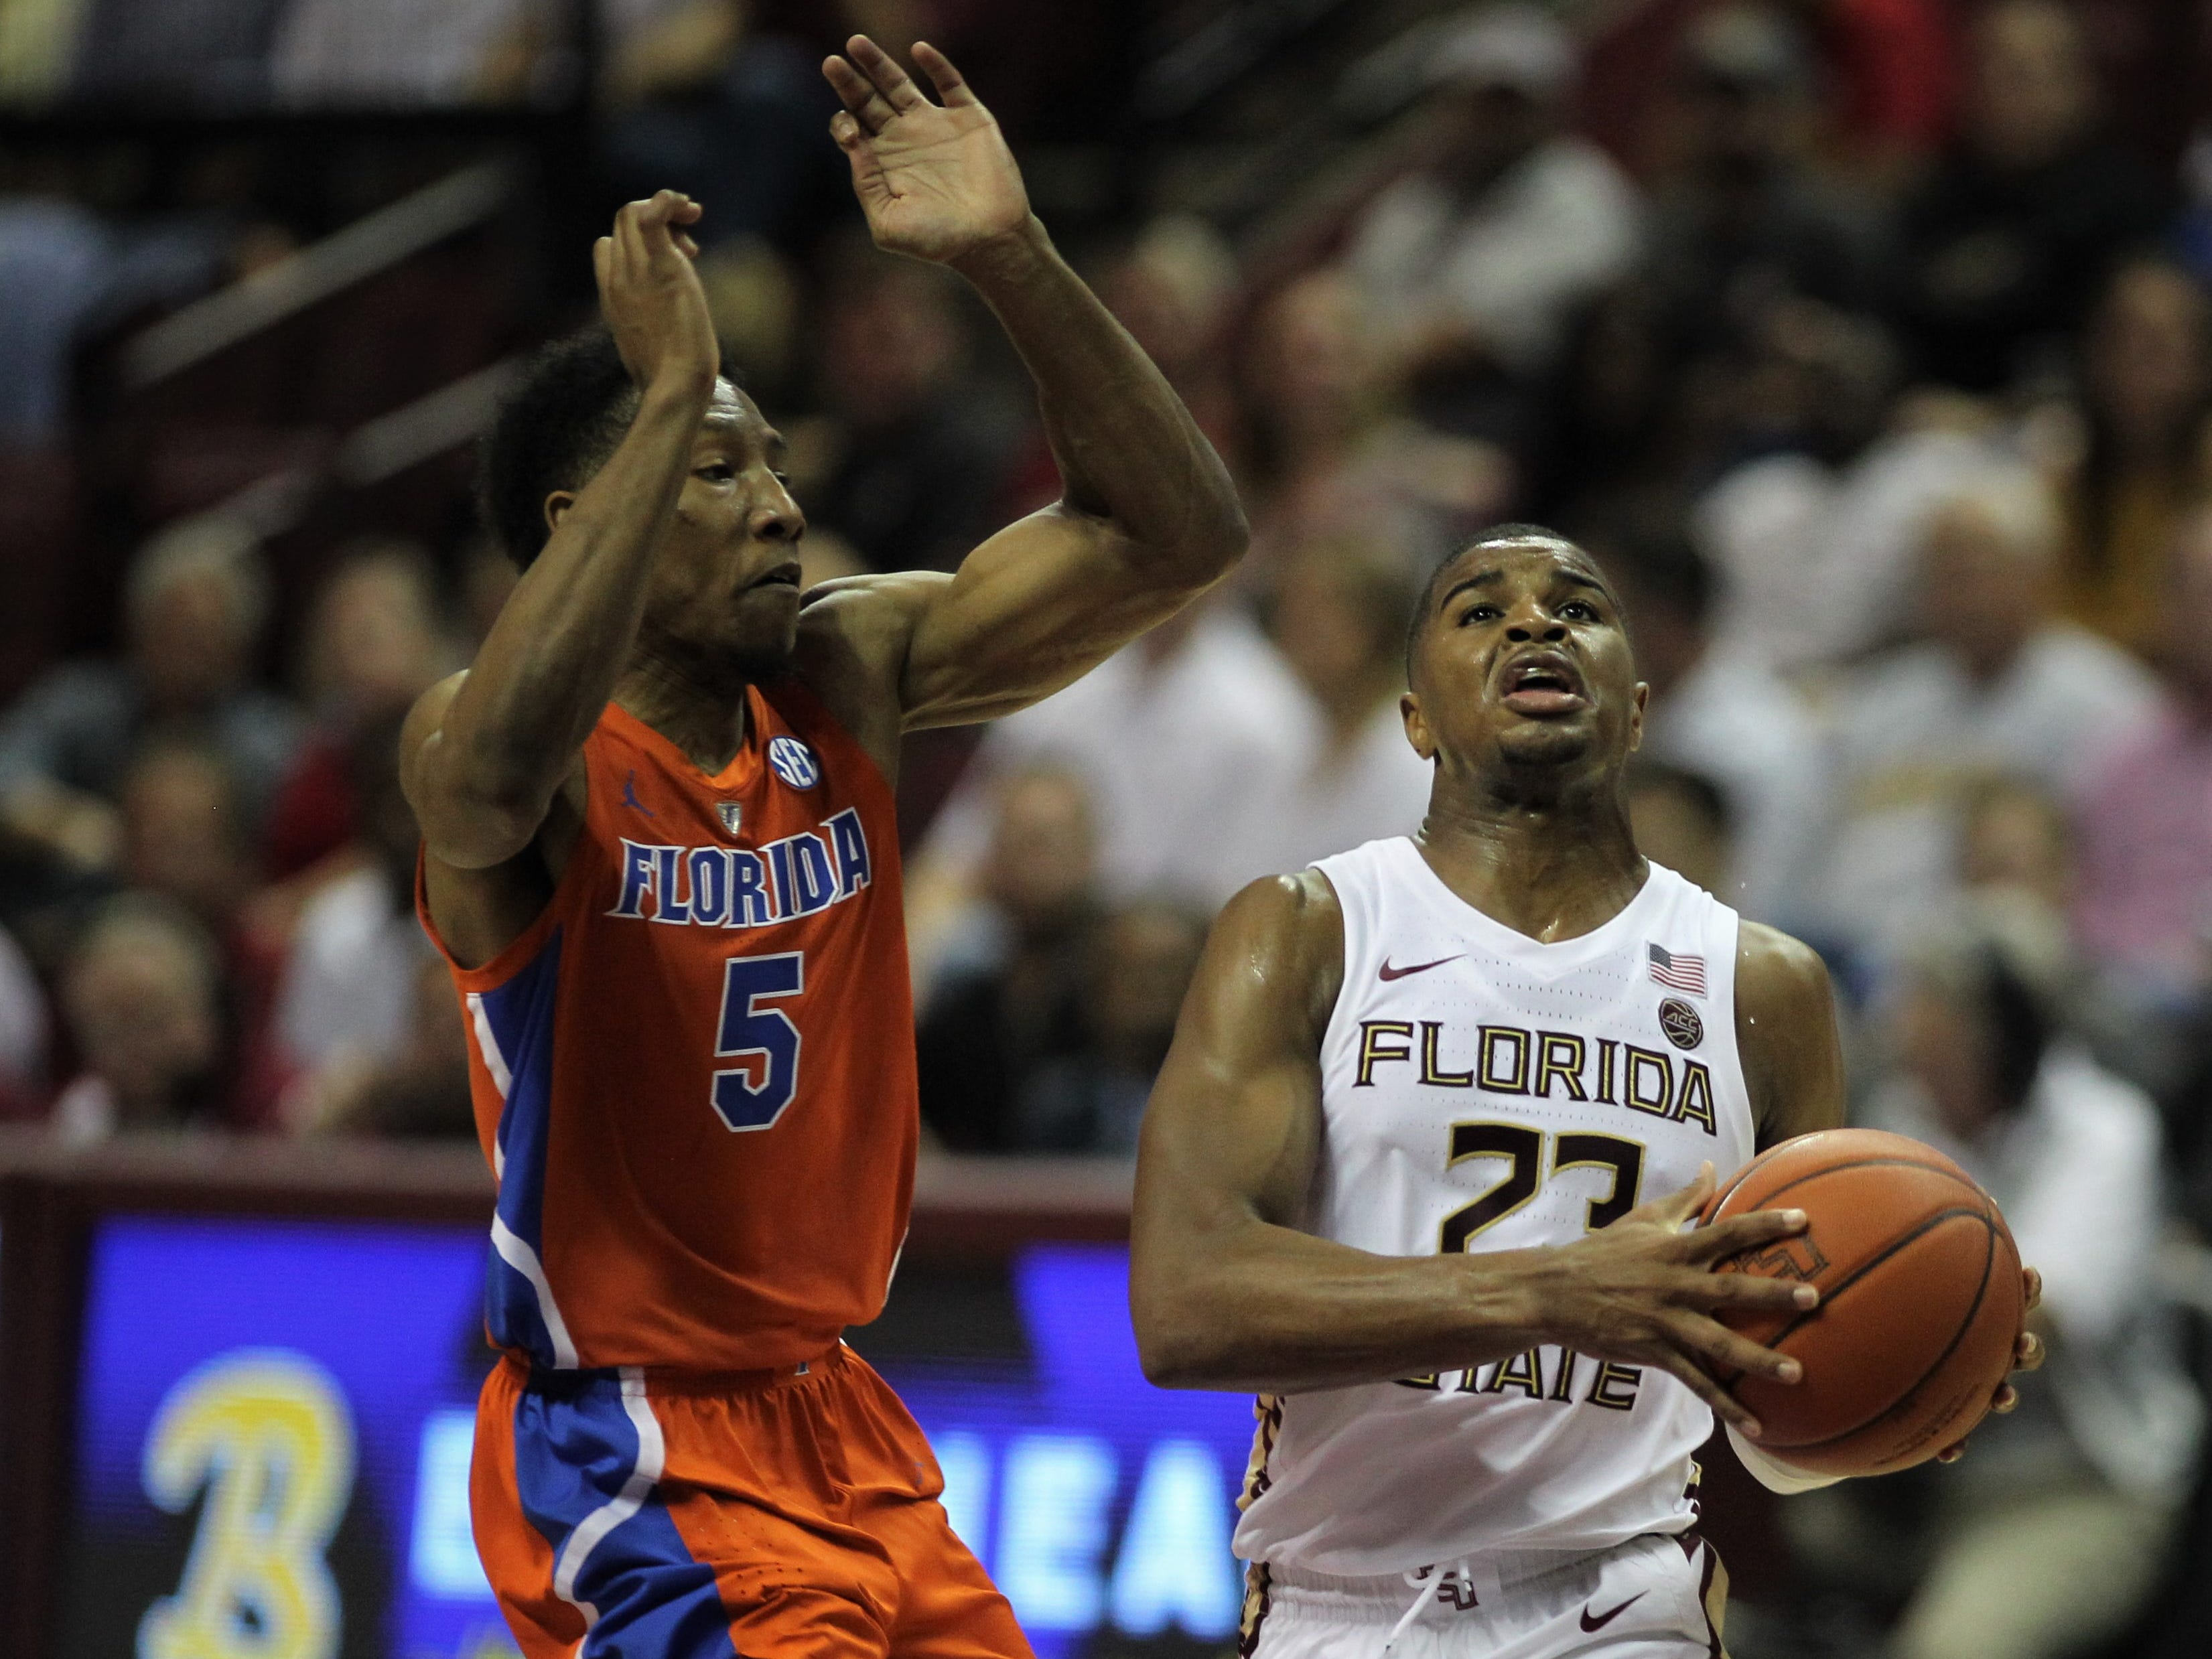 Florida State's M.J. Walker tries for a breakaway layup as Florida's Kevaughn Allen defends during the Sunshine Showdown game Tuesday at the Tucker Civic Center.